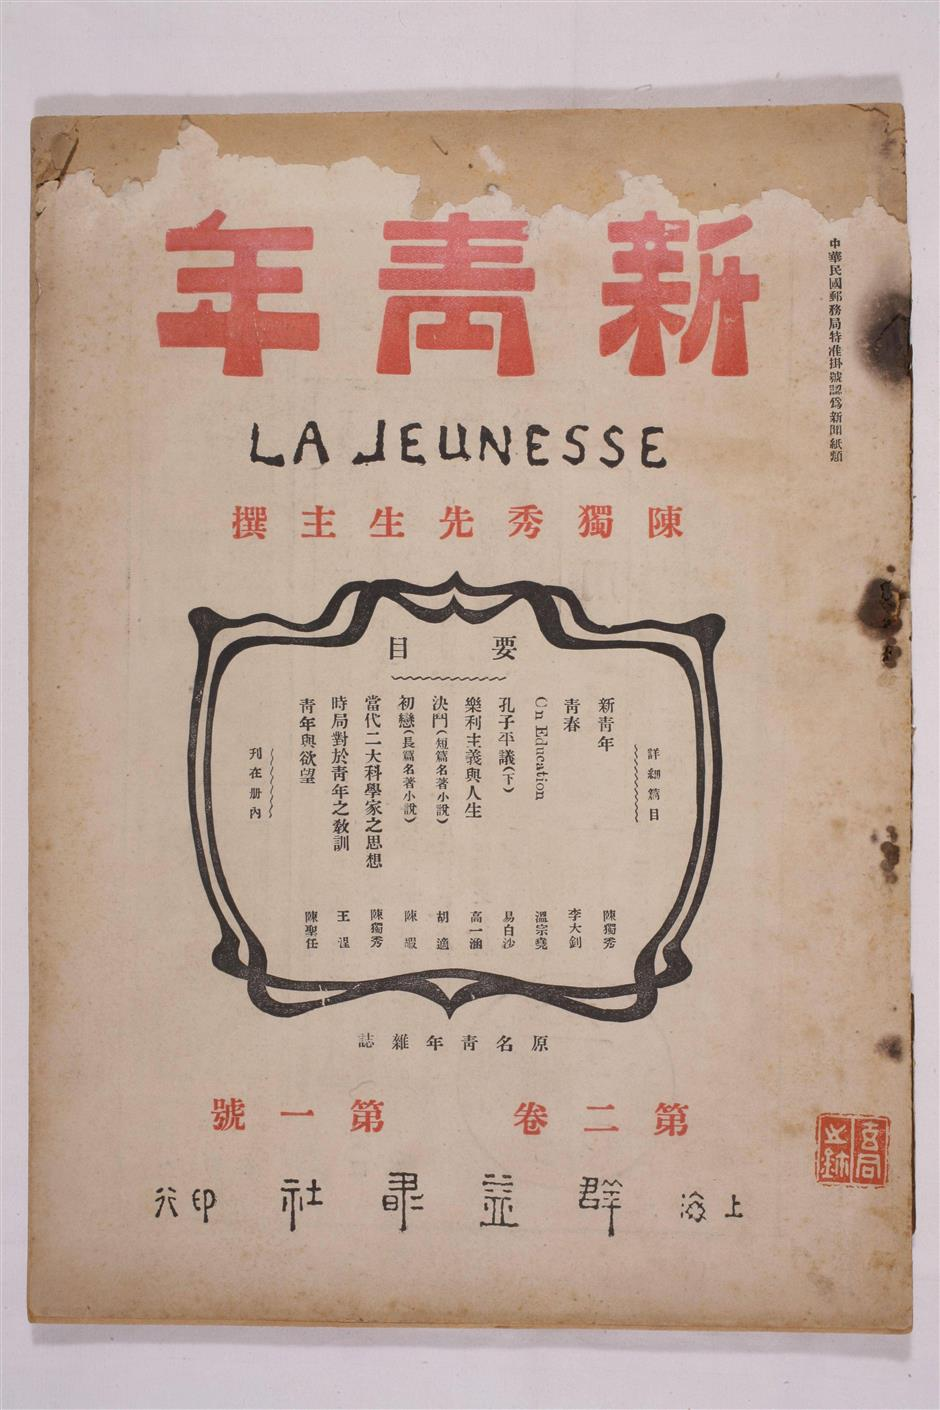 Intellectuals who helped shapemodern Chinese history resonate today